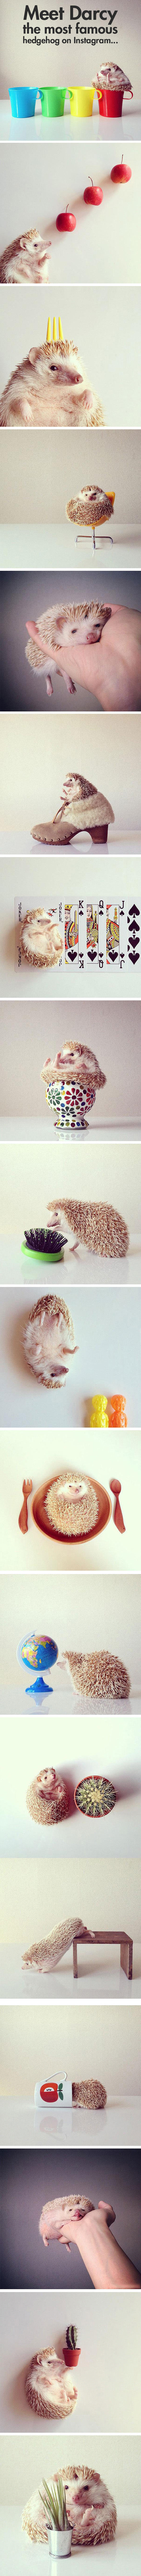 The Most Fabulous Hedgehog On The Internet